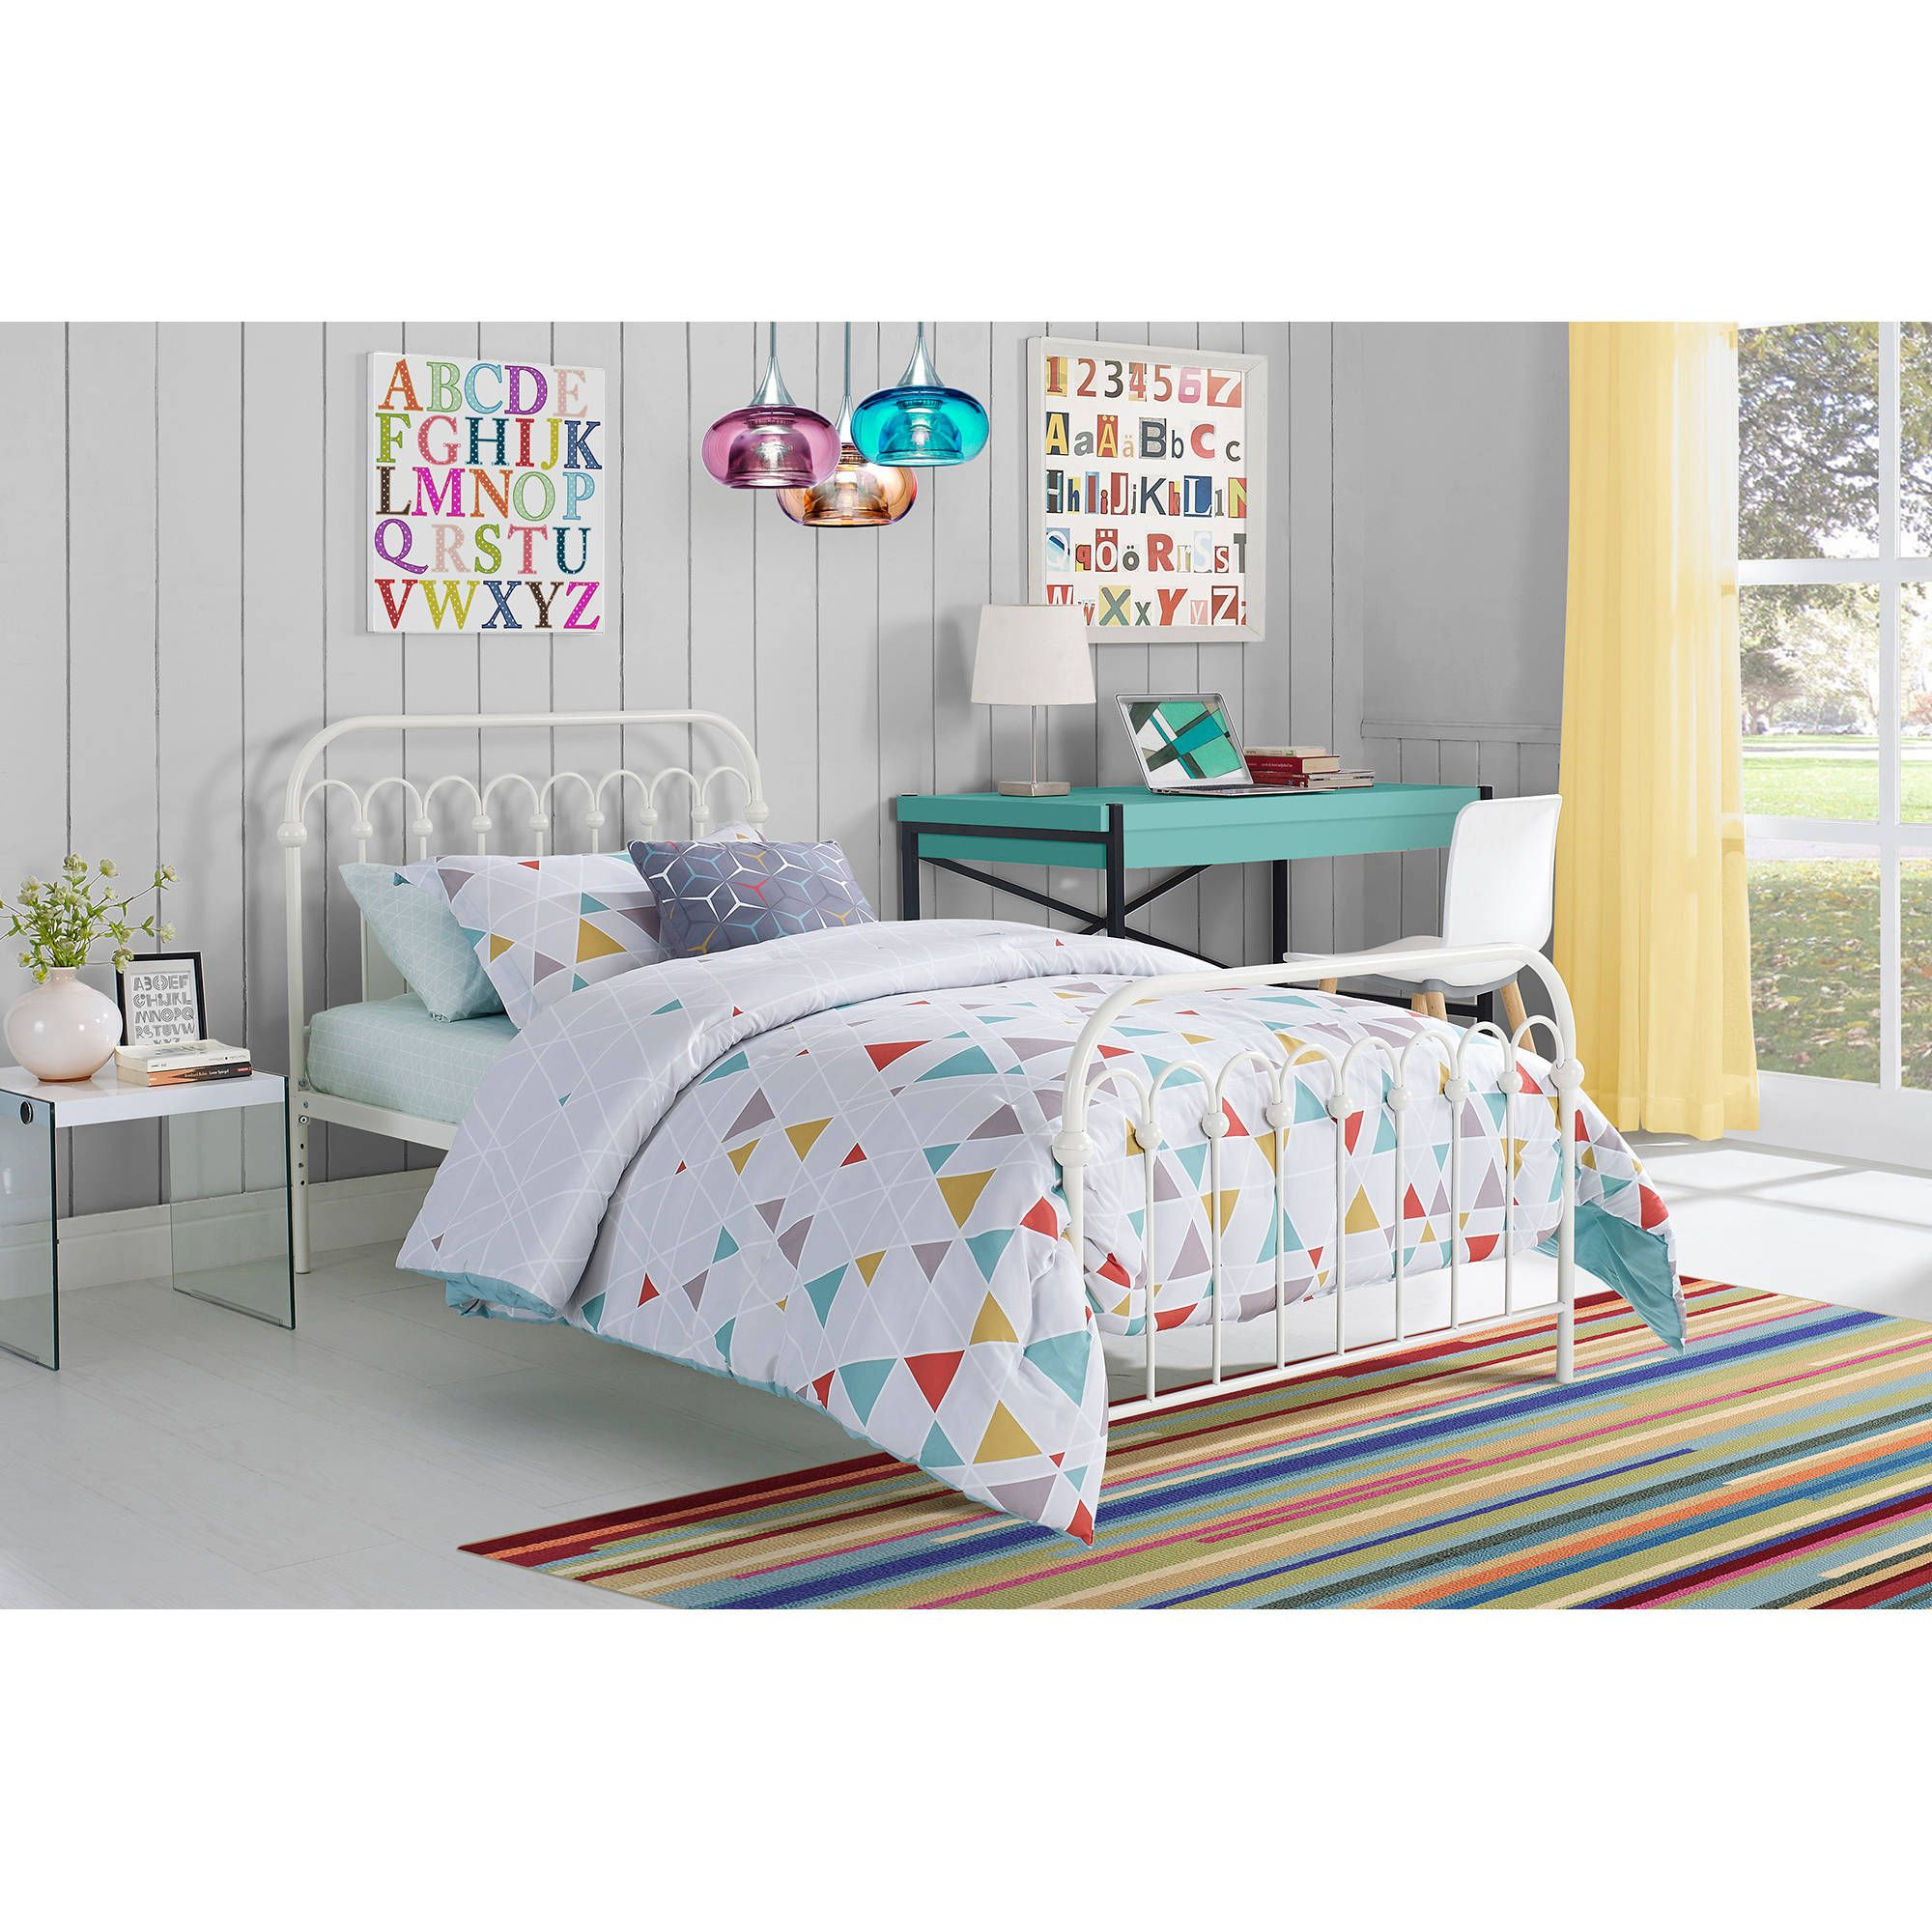 White metal twin bed from Walmart. | Girly Rooms & Decor | Pinterest ...